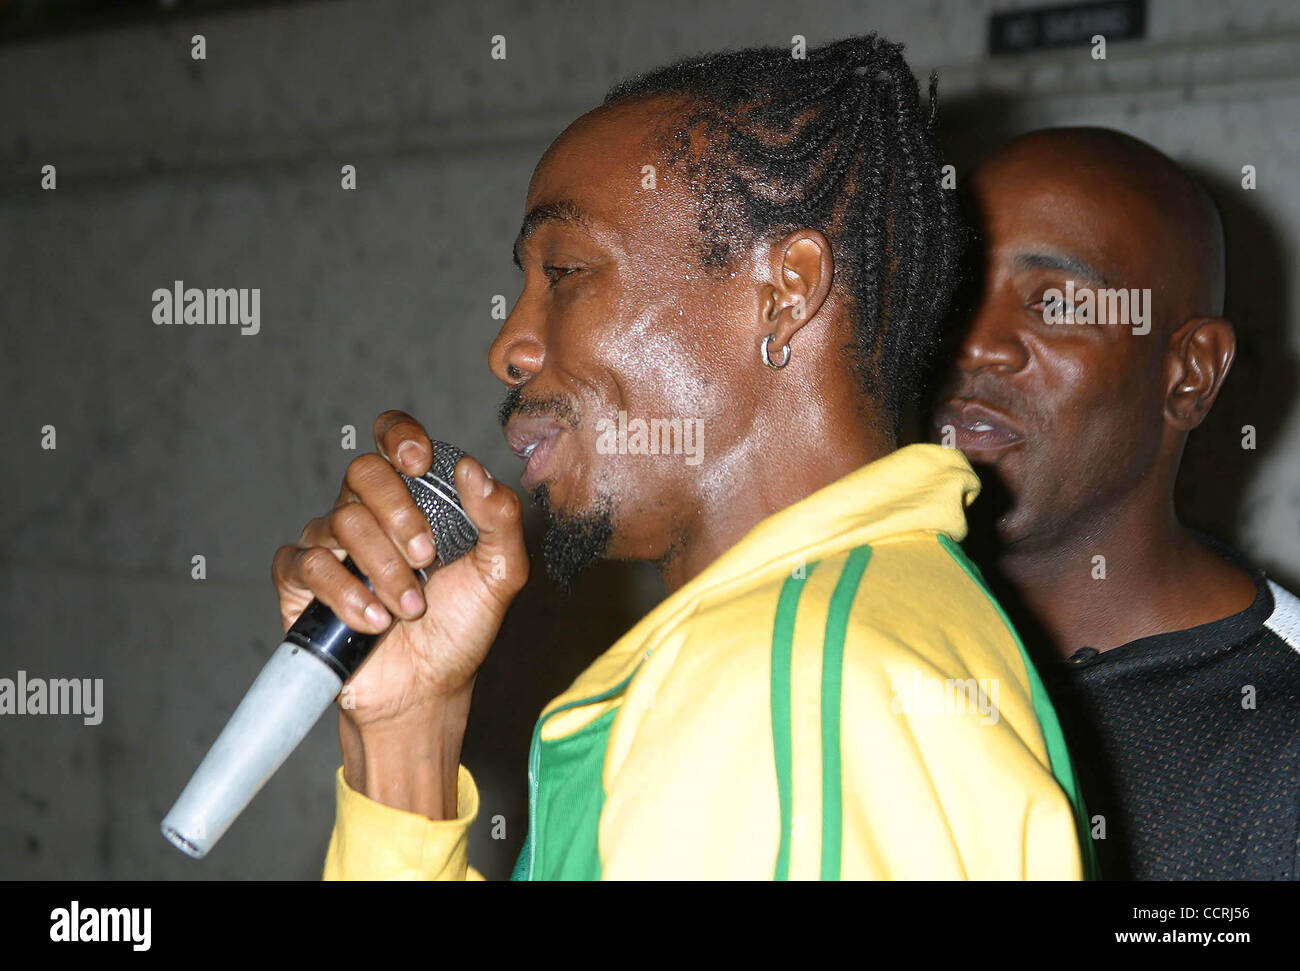 Oct. 12, 2003 - Hollywood, California, U.S. - I8054CHW.THE TASTE OF JAMAICA: PRESENTED BY THE CONSULATE OF JAMAICA. - Stock Image